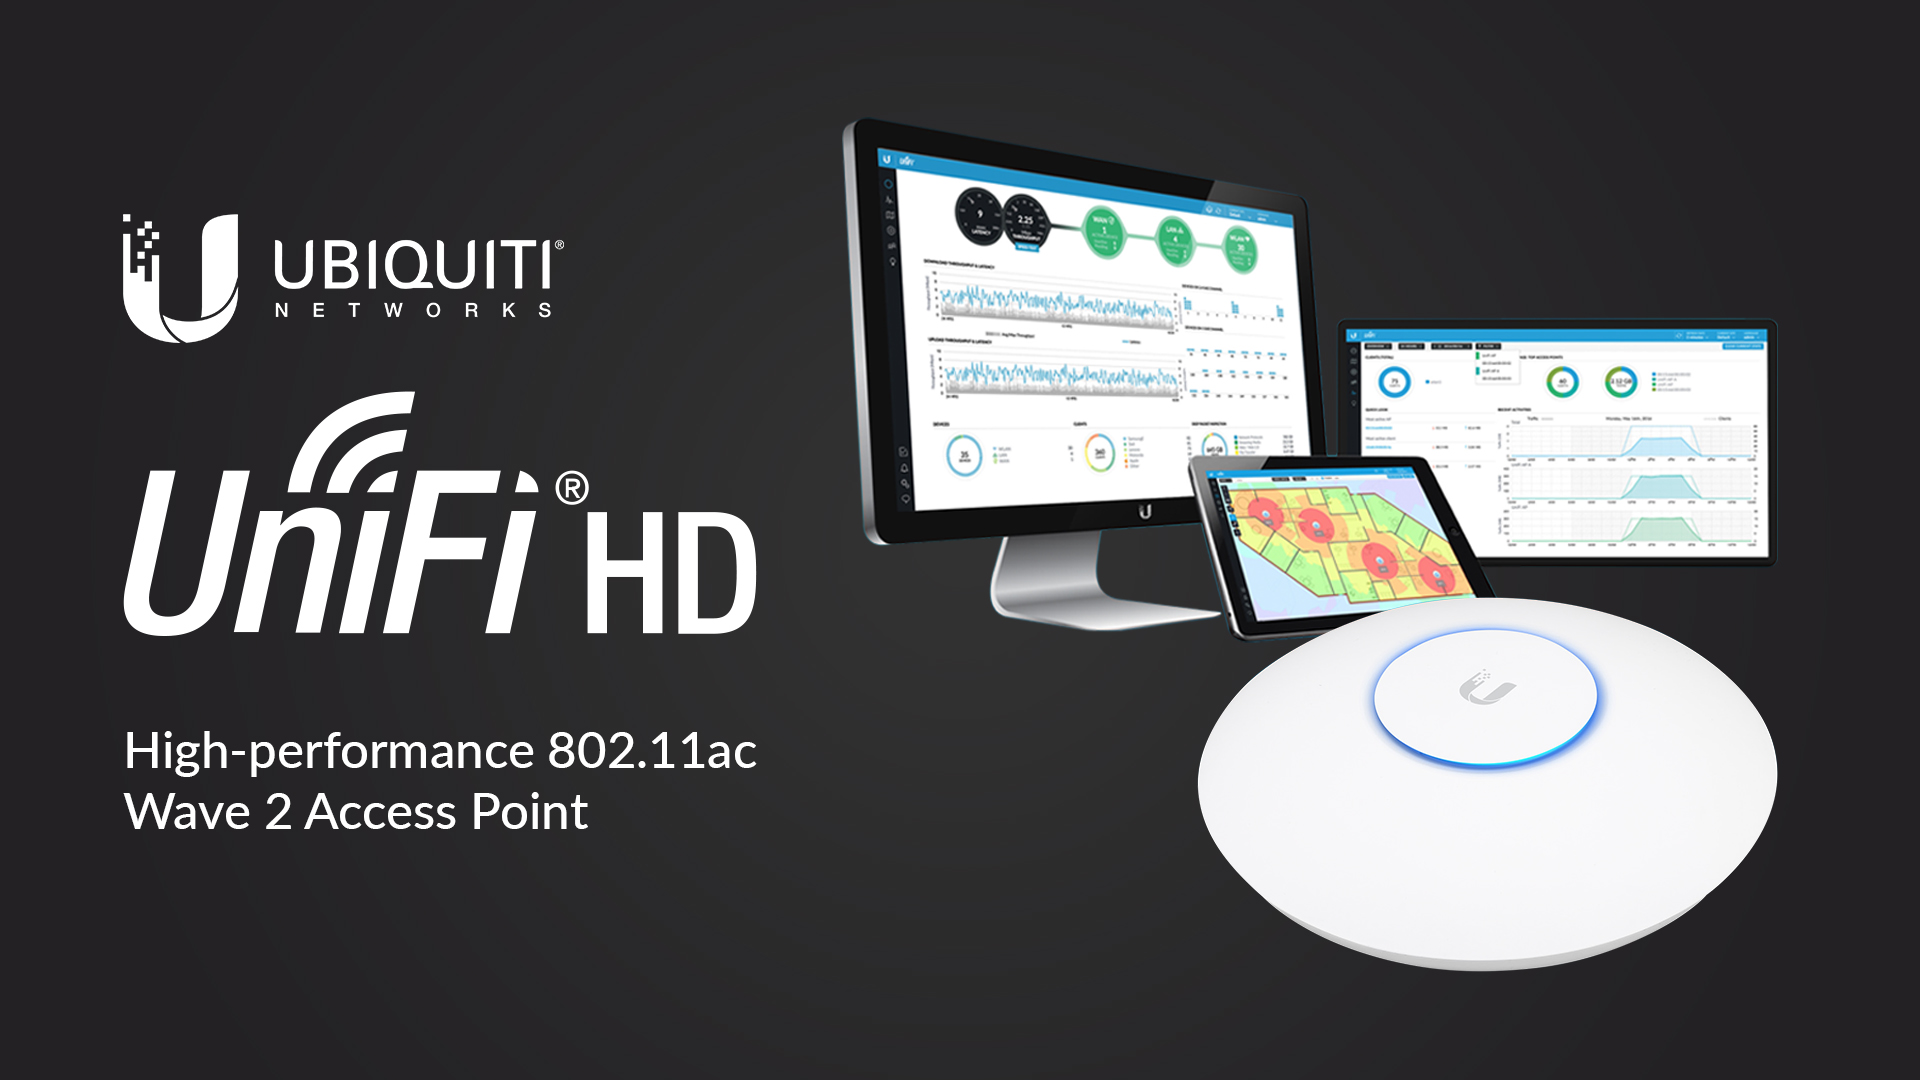 Ubiquiti UniFi APAC HD